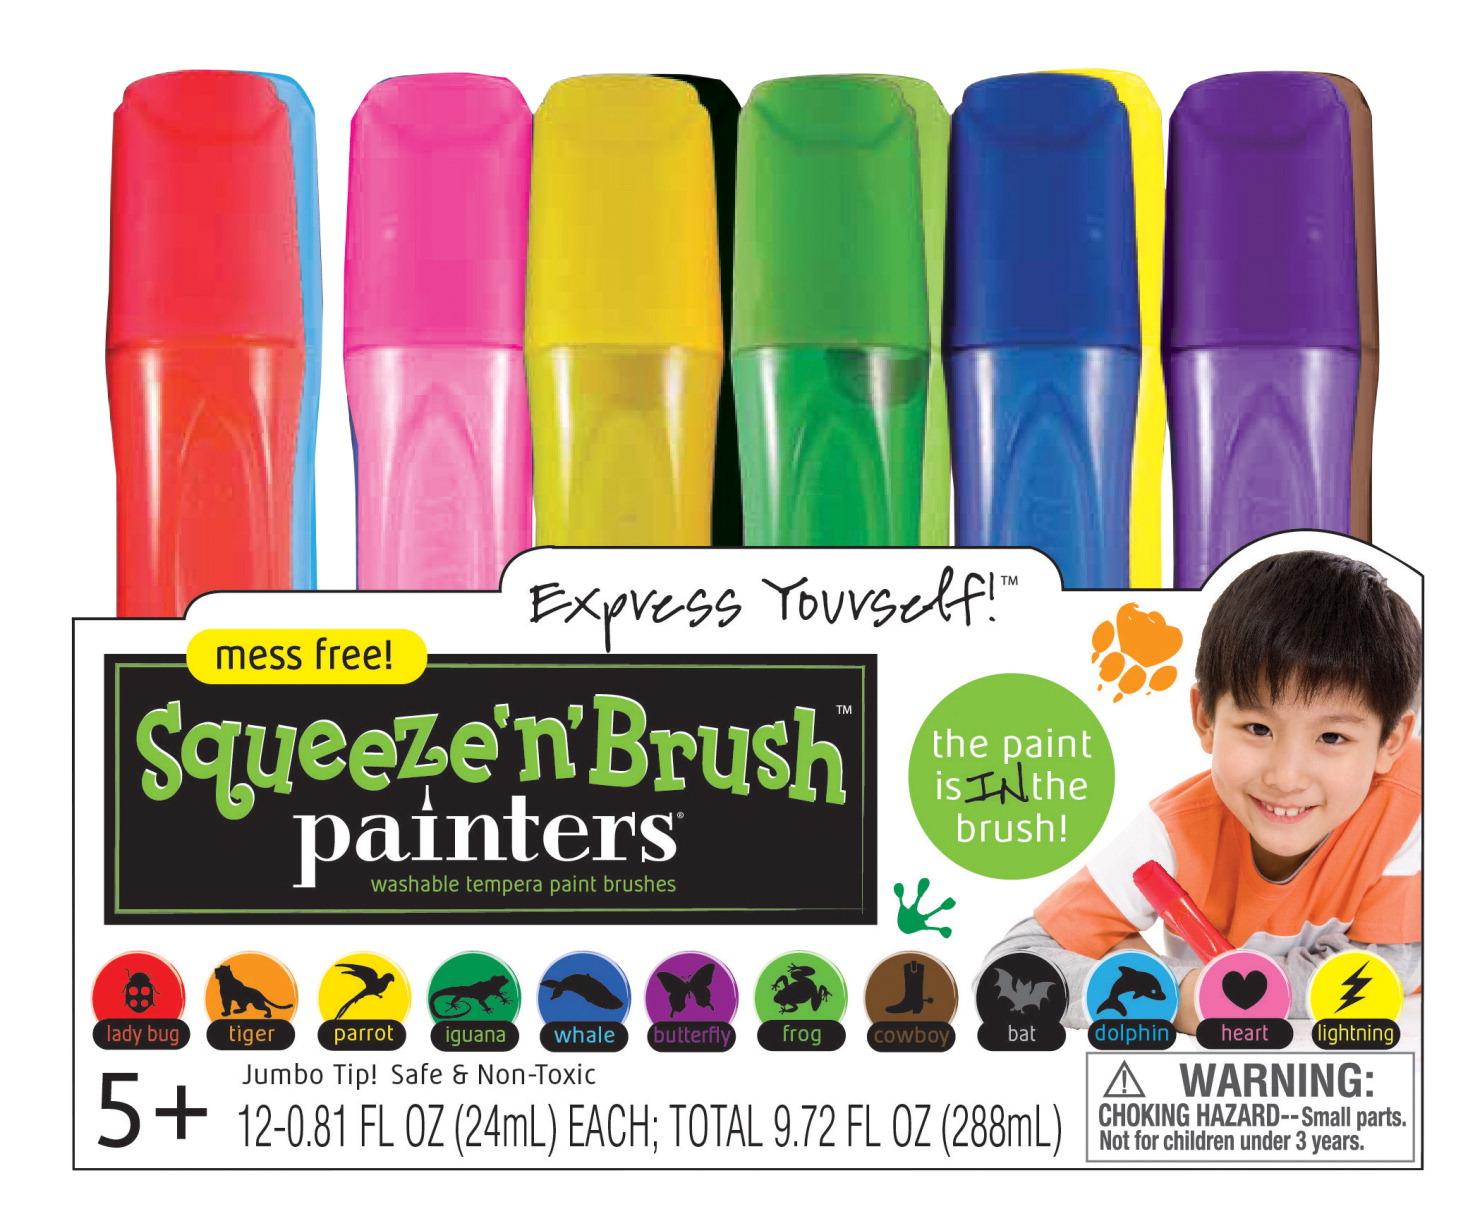 Painters Squeeze 'n' Brush Washable Tempera Paint Brushes, Assorted Colors, Set of 12